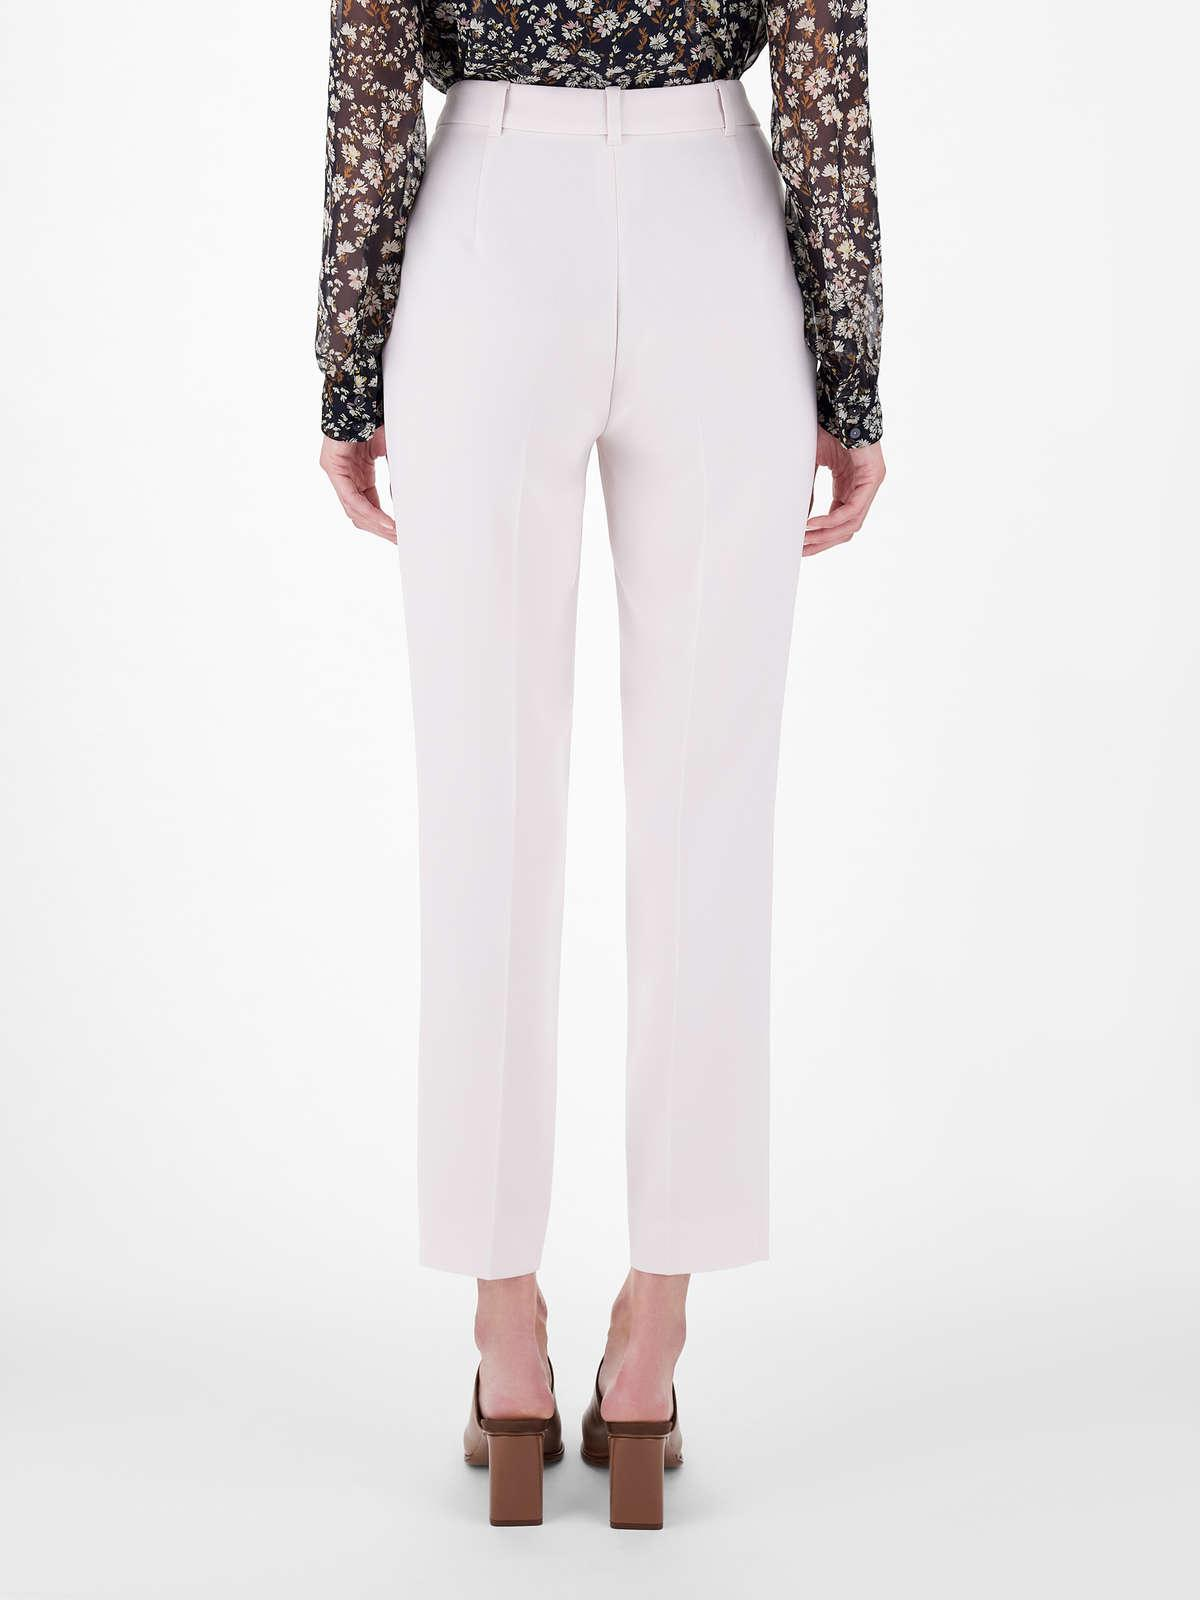 Womens Max Mara Trousers And Jeans | Cady Trousers Sugared